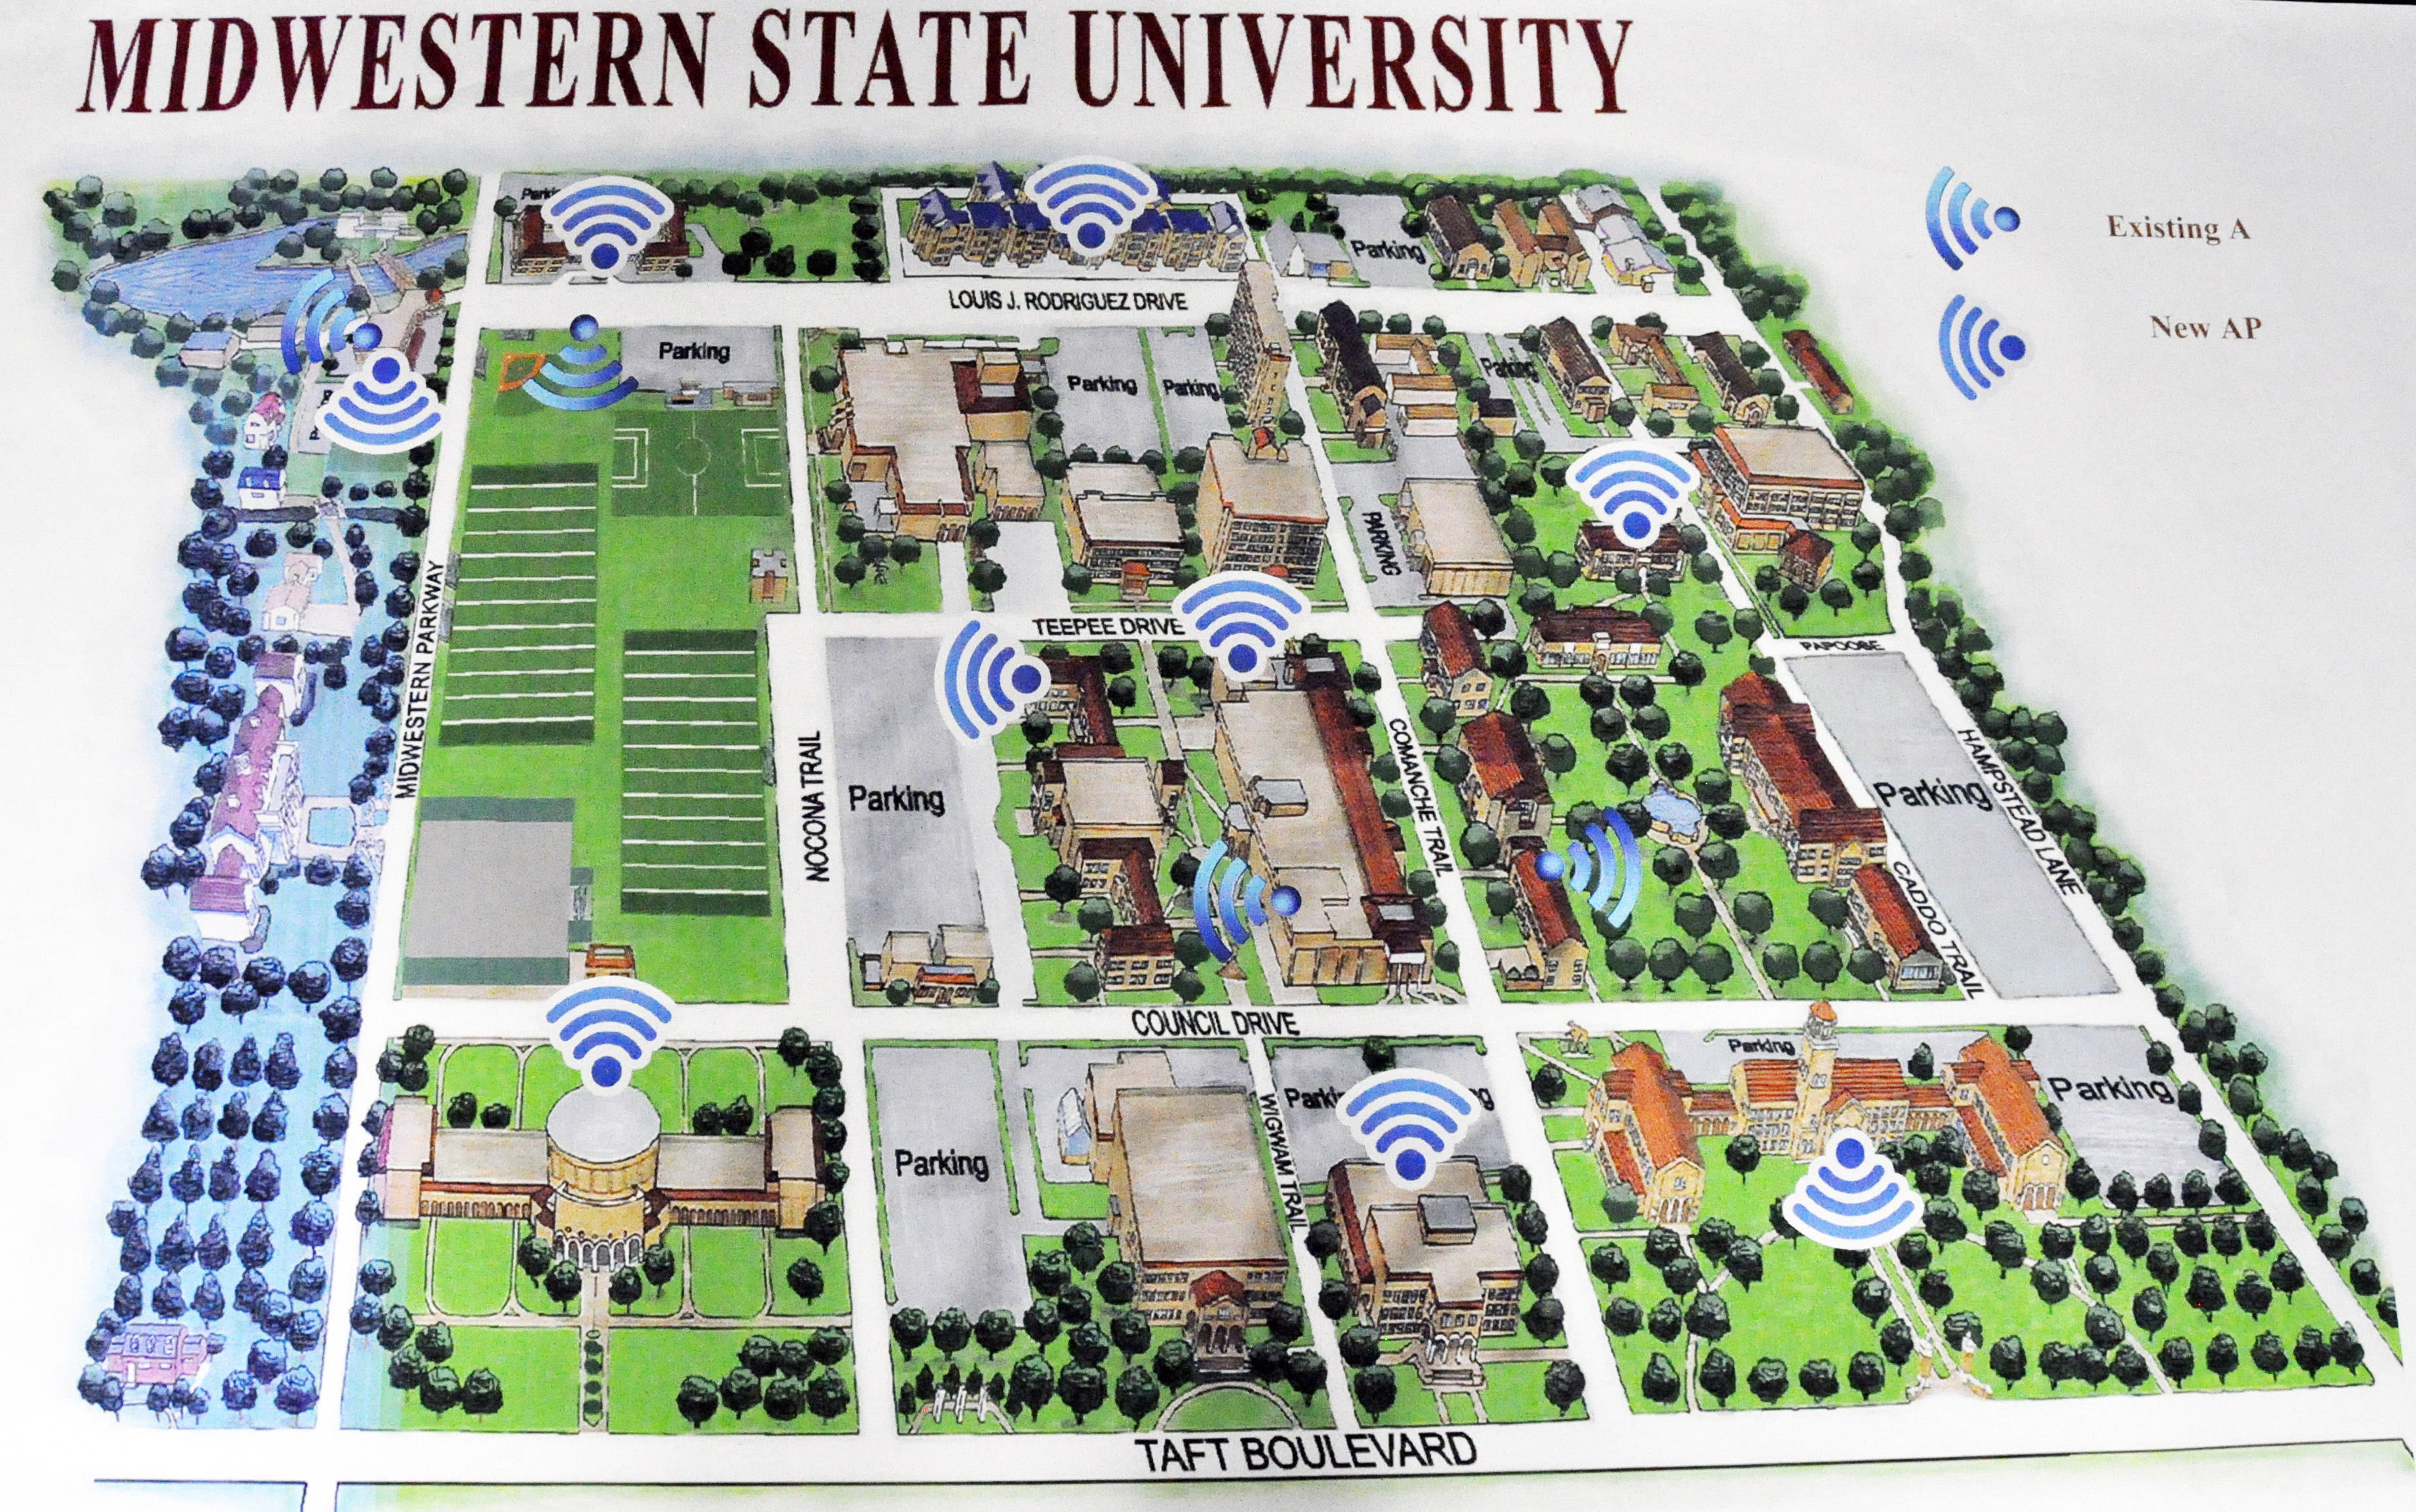 Campus gets connected